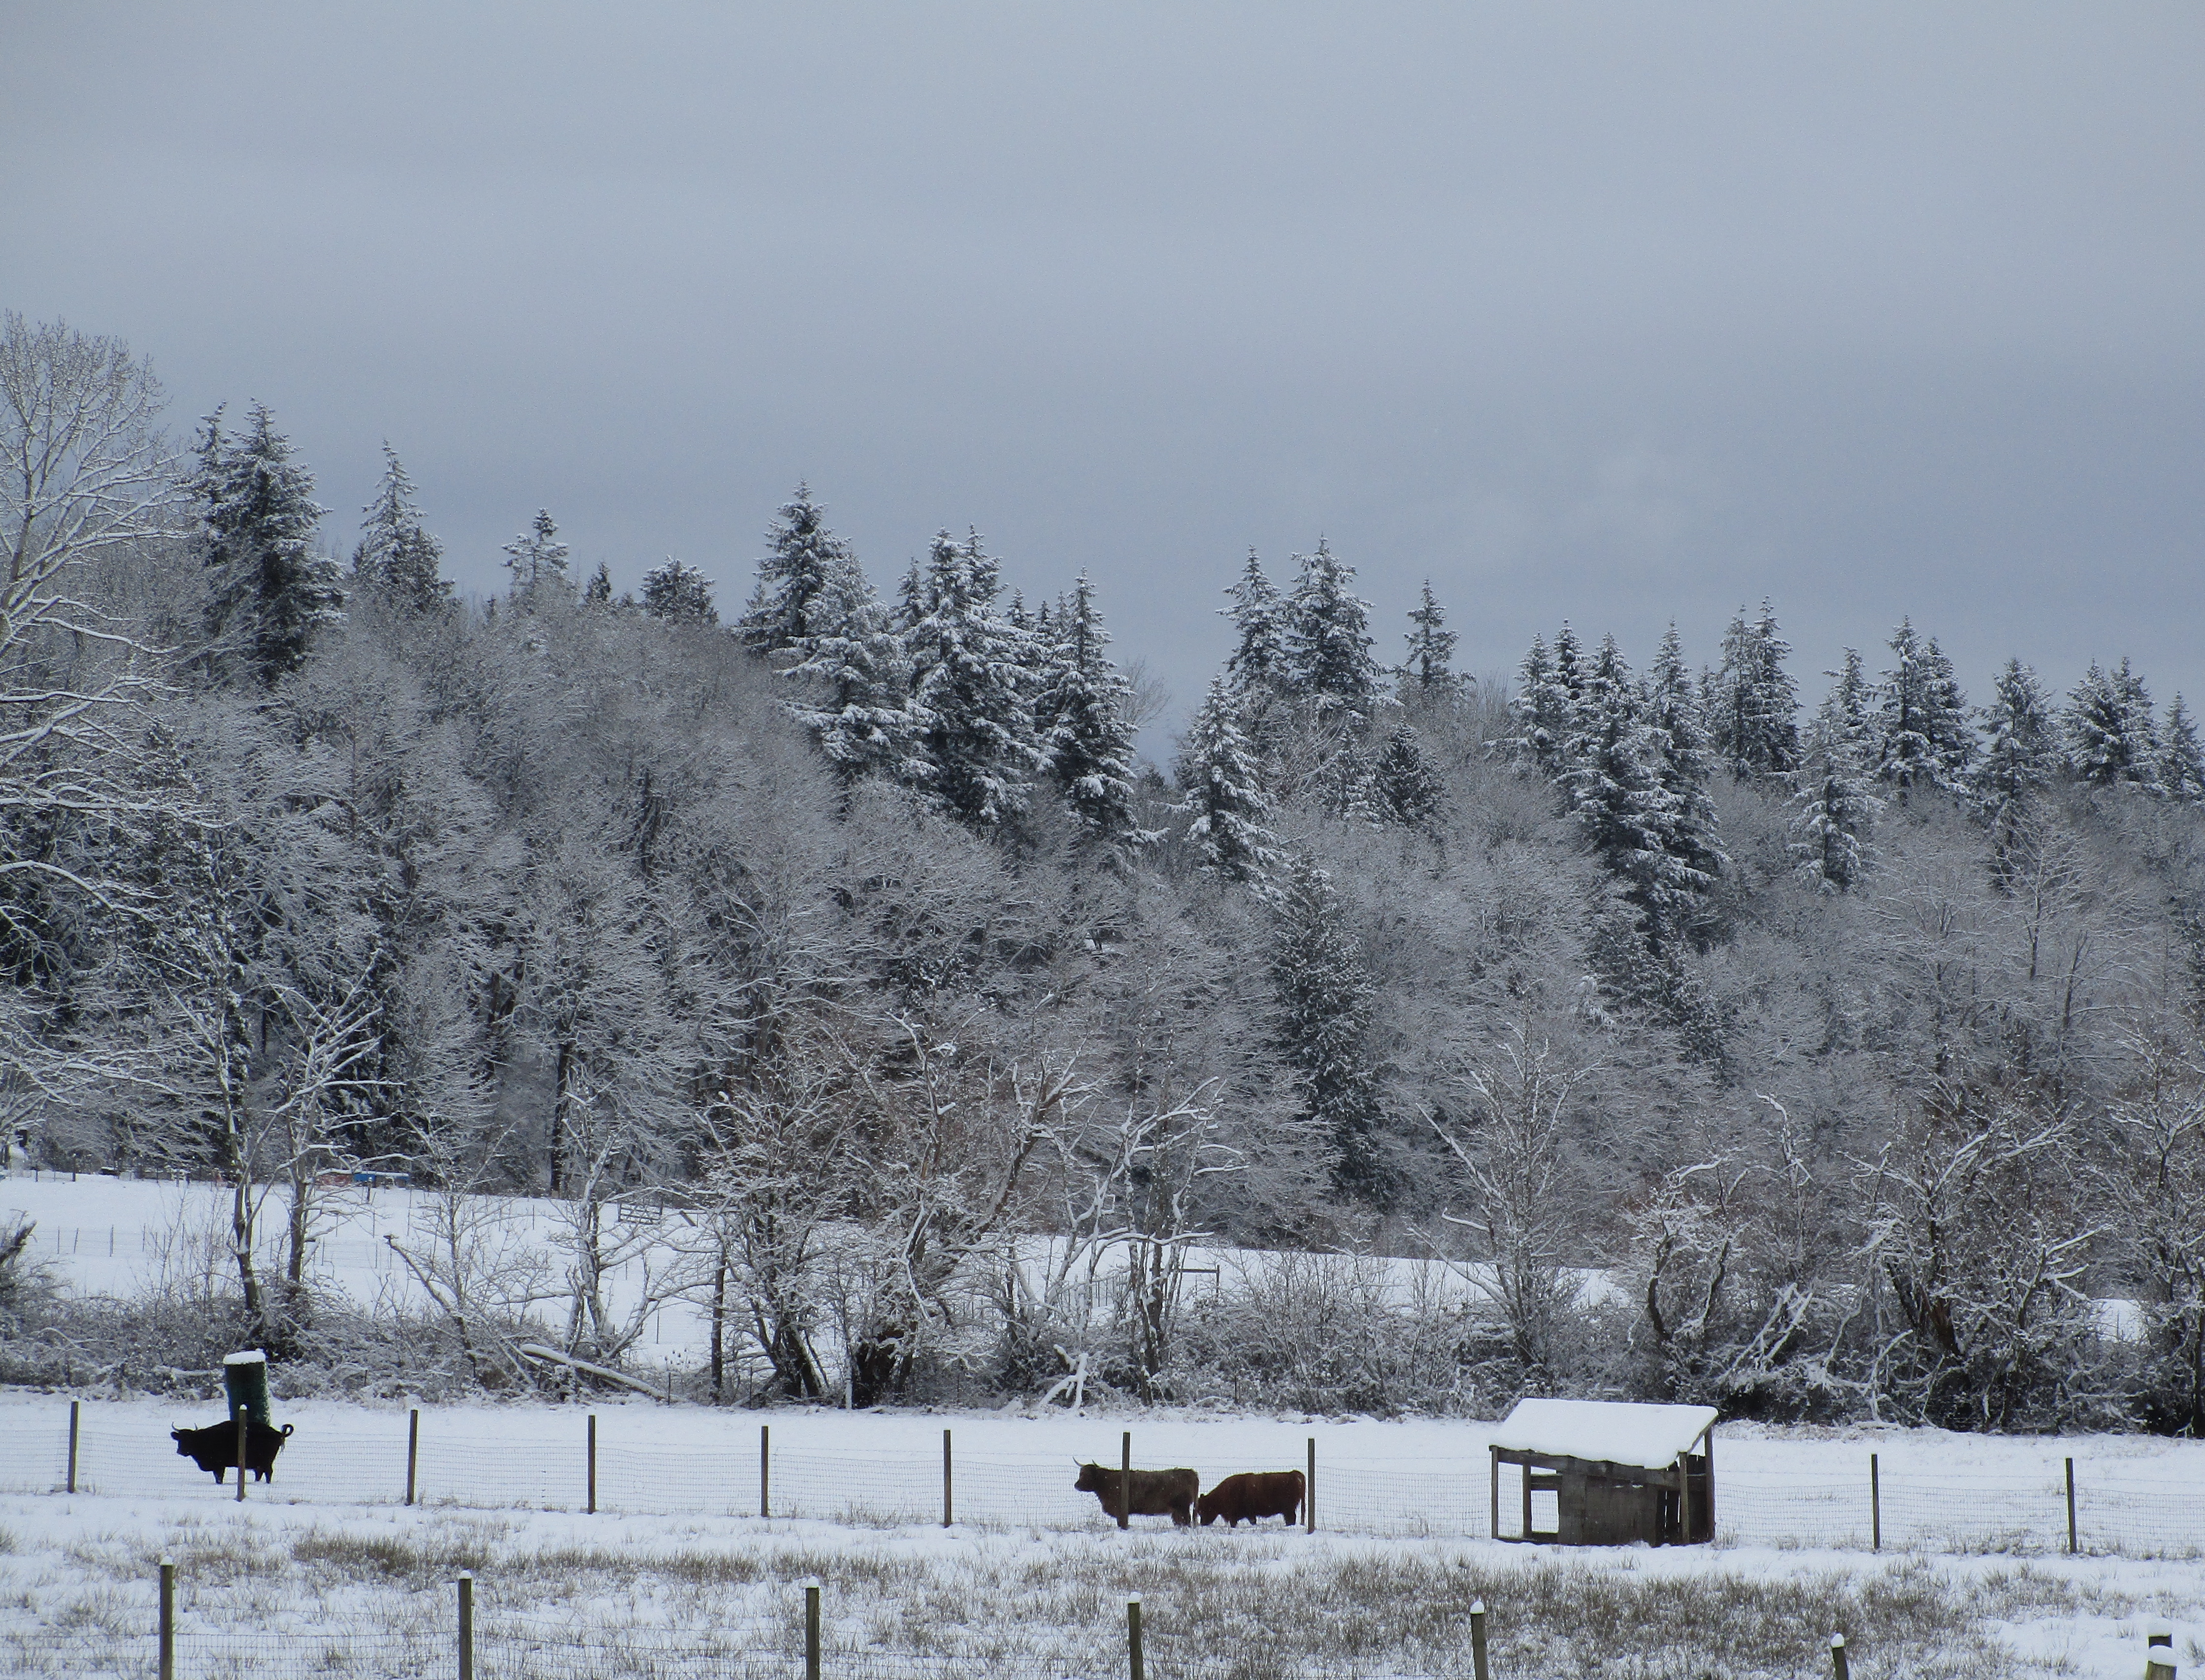 cows and snowy trees